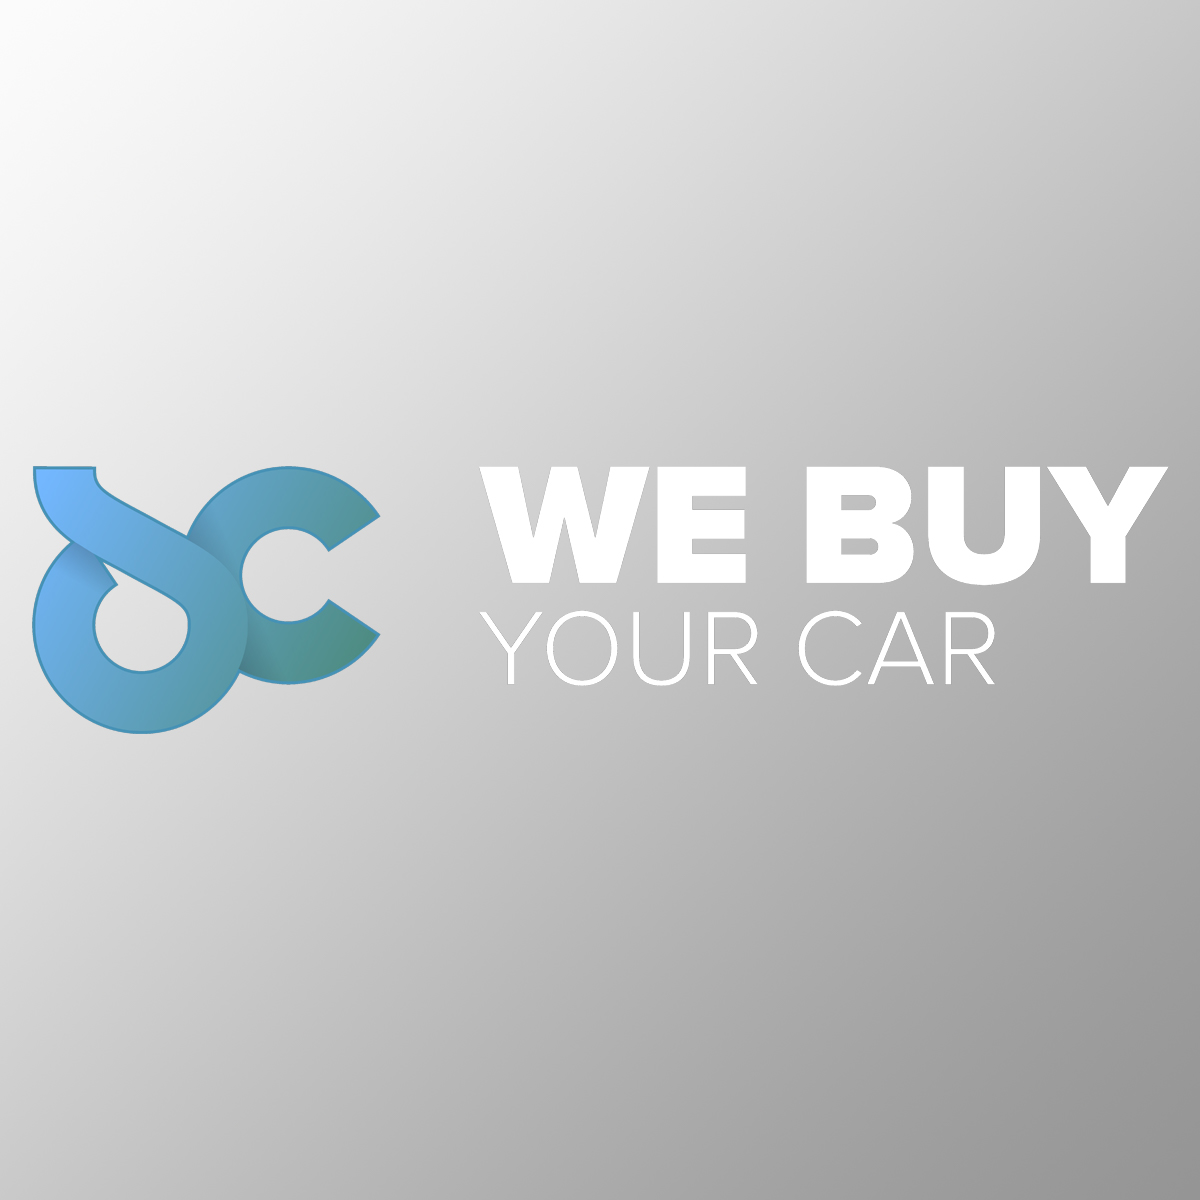 We Buy Your Car - Free online valuation without registration